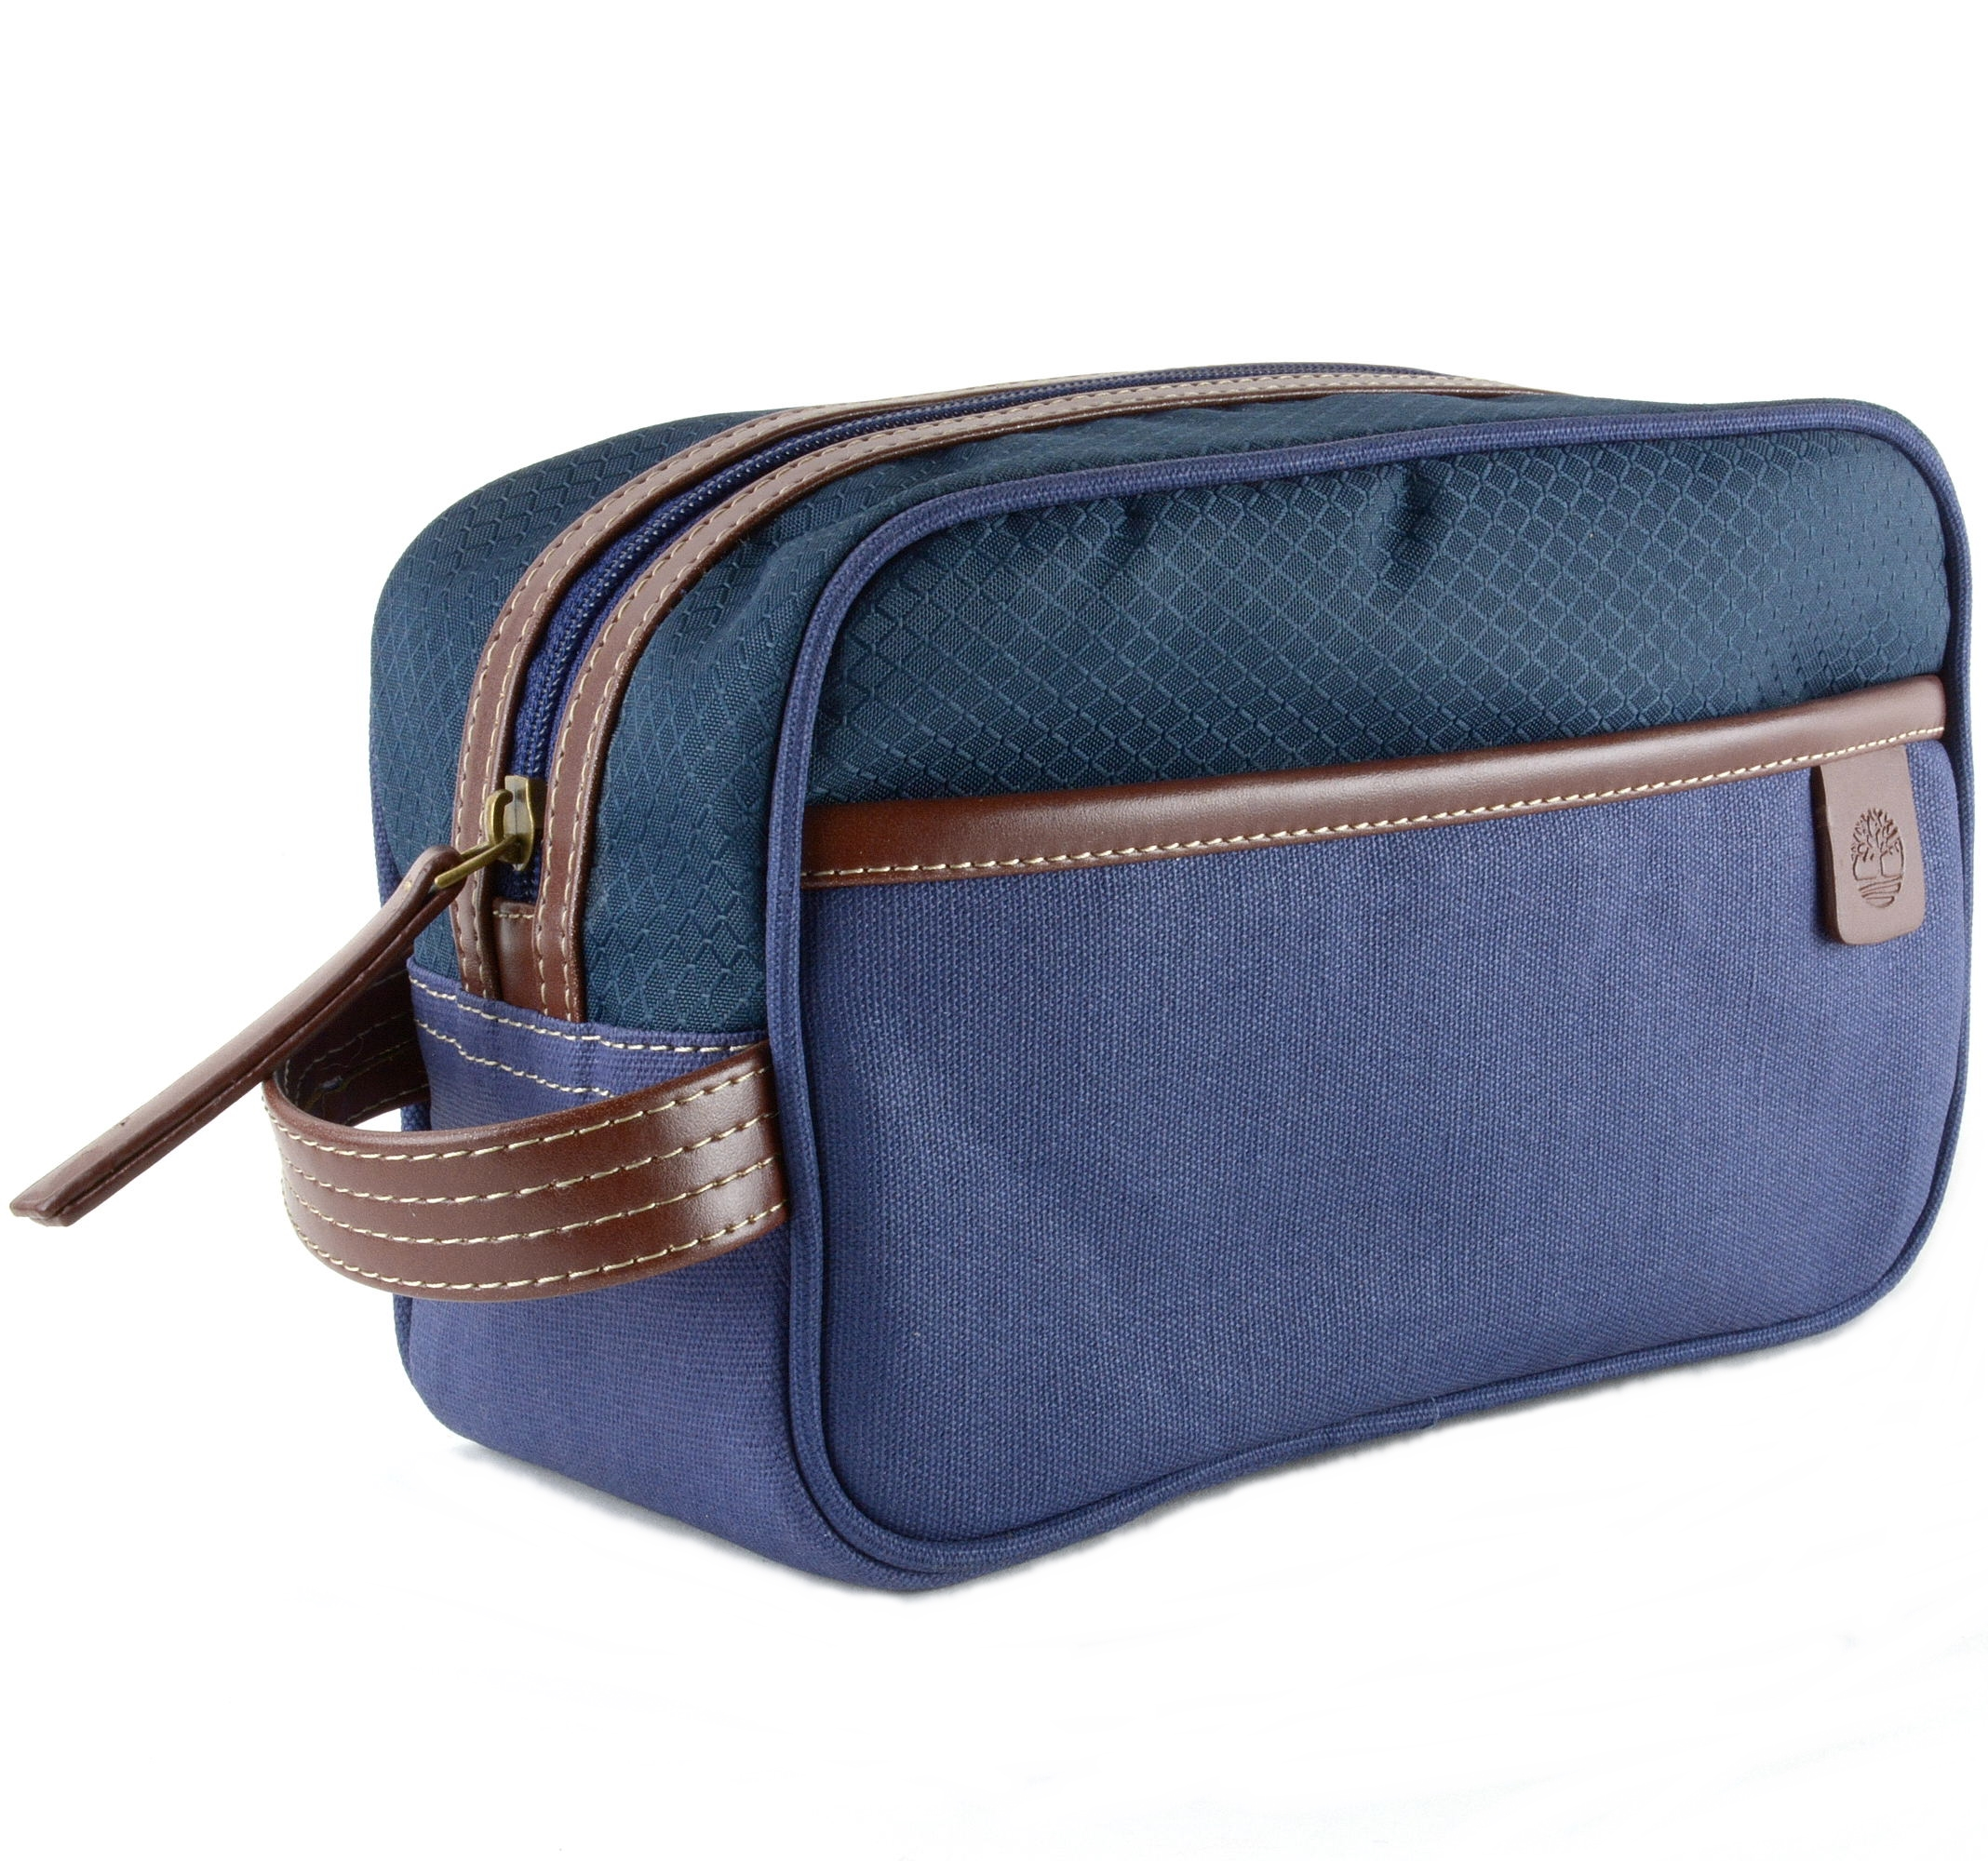 ... Travel Kit Toiletry Bag Overnight Handle Case Canvas Shaving Dopp Kit   new concept 32663 0fa50 Timberland-Toiletry-Bag-Dopp-Kit-Clutch- ... 0f83d4af97